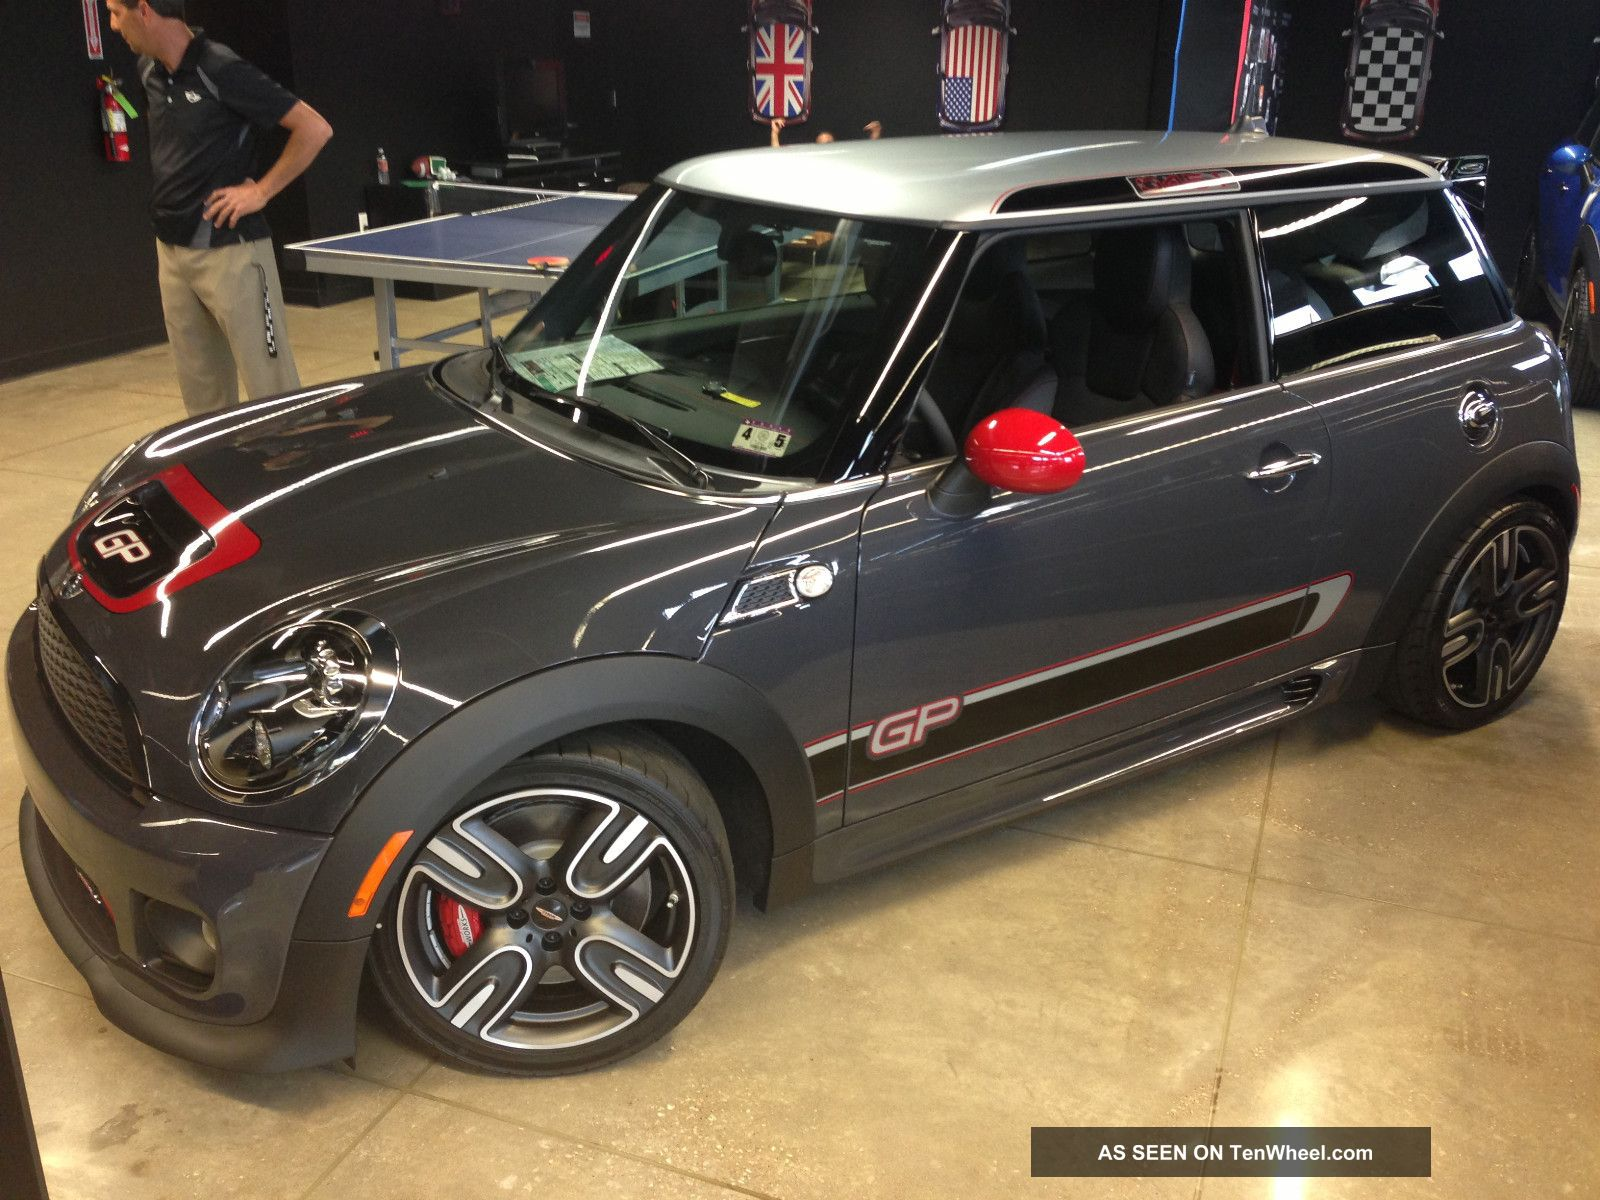 2013 John Cooper Works Gp 1 - 500 In The Us Ever Don ' T Miss Cooper S photo